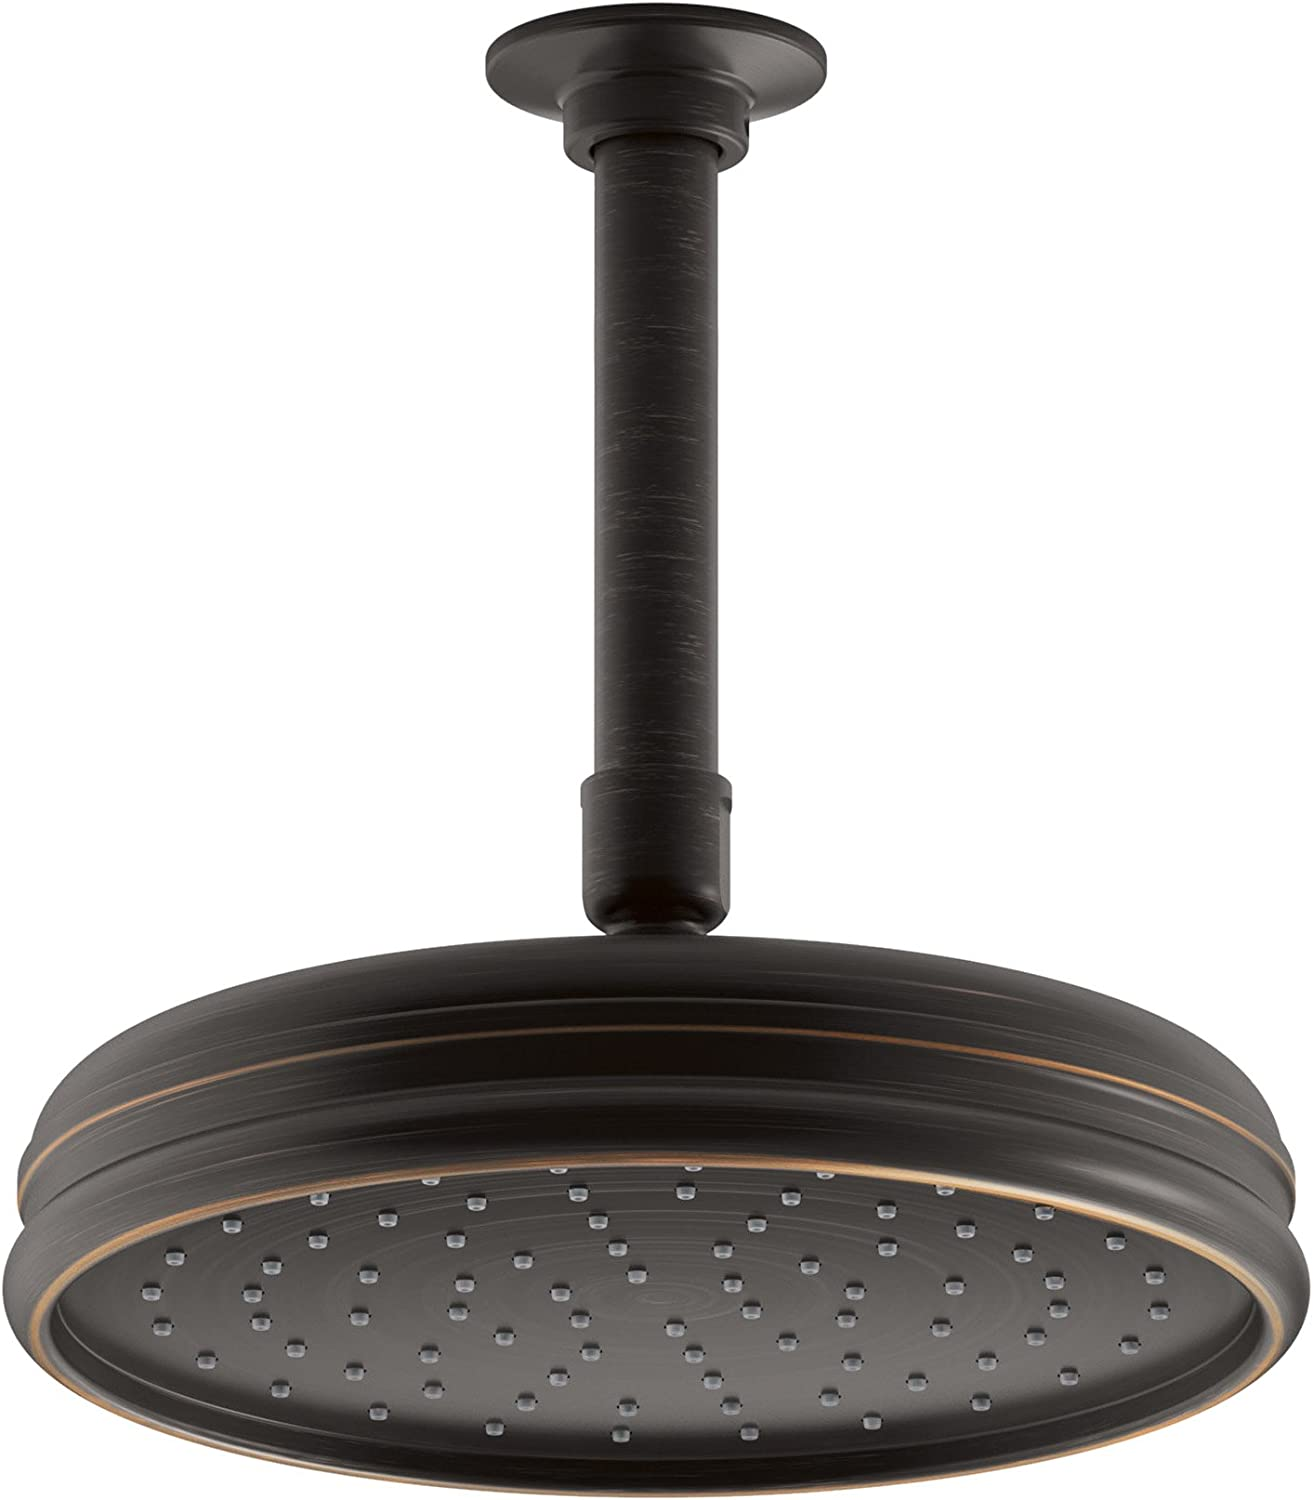 Kohler K-13692-2BZ 8-Inch Traditional Round Rain Showerhead with Katalyst Spray Technology, Oil Rubbed Bronze